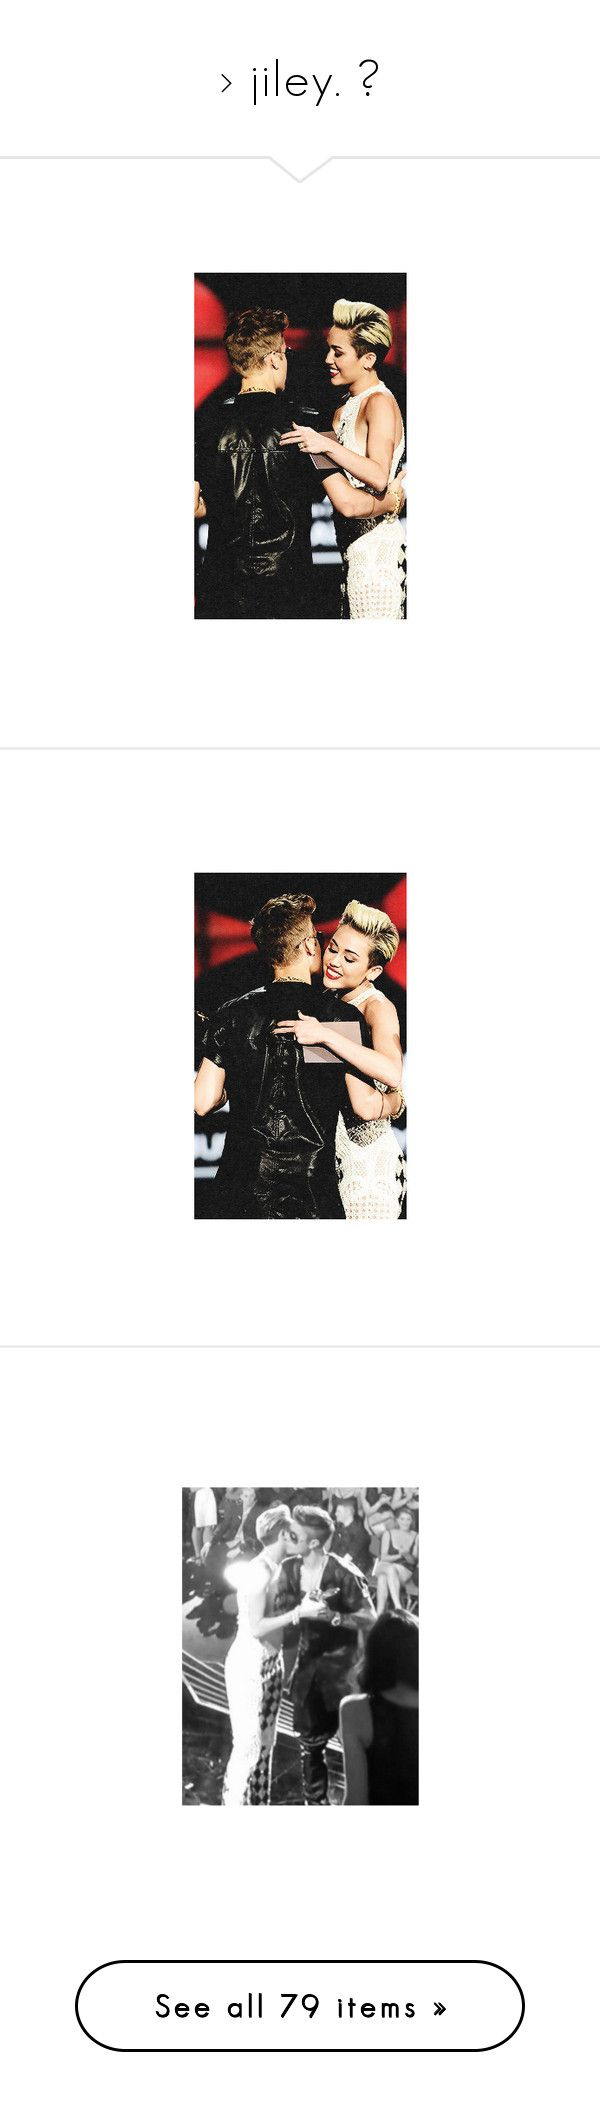 """› jiley. ♥"" by f-ior3lla ❤ liked on Polyvore featuring miley, justin bieber, miley cyrus, jiley, home, lighting and home decor"